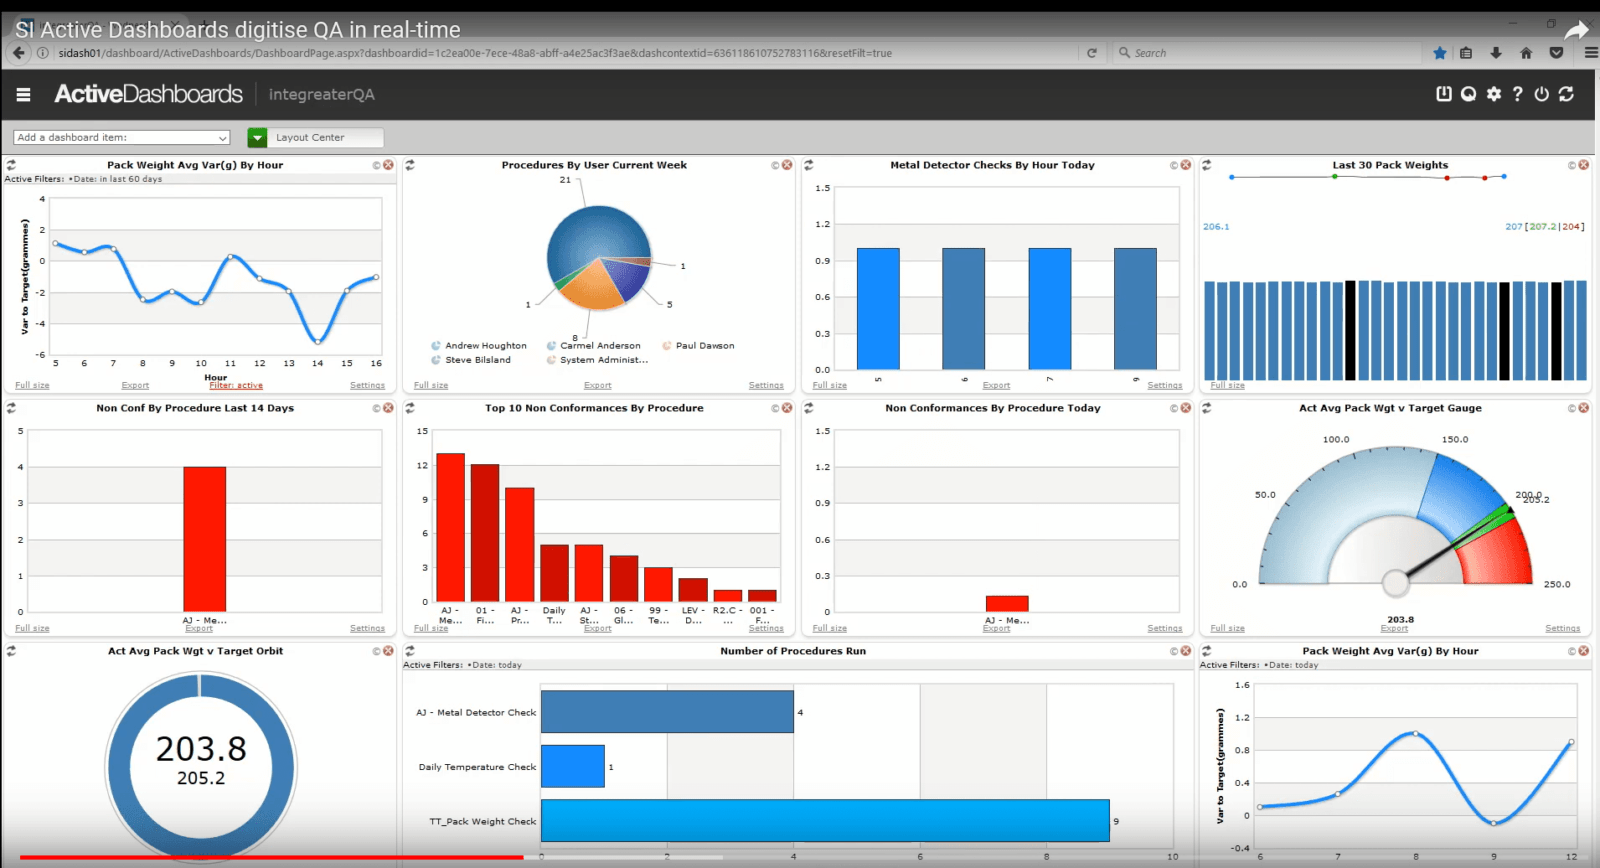 Video: SI Active Dashboards digitise QA in real-time